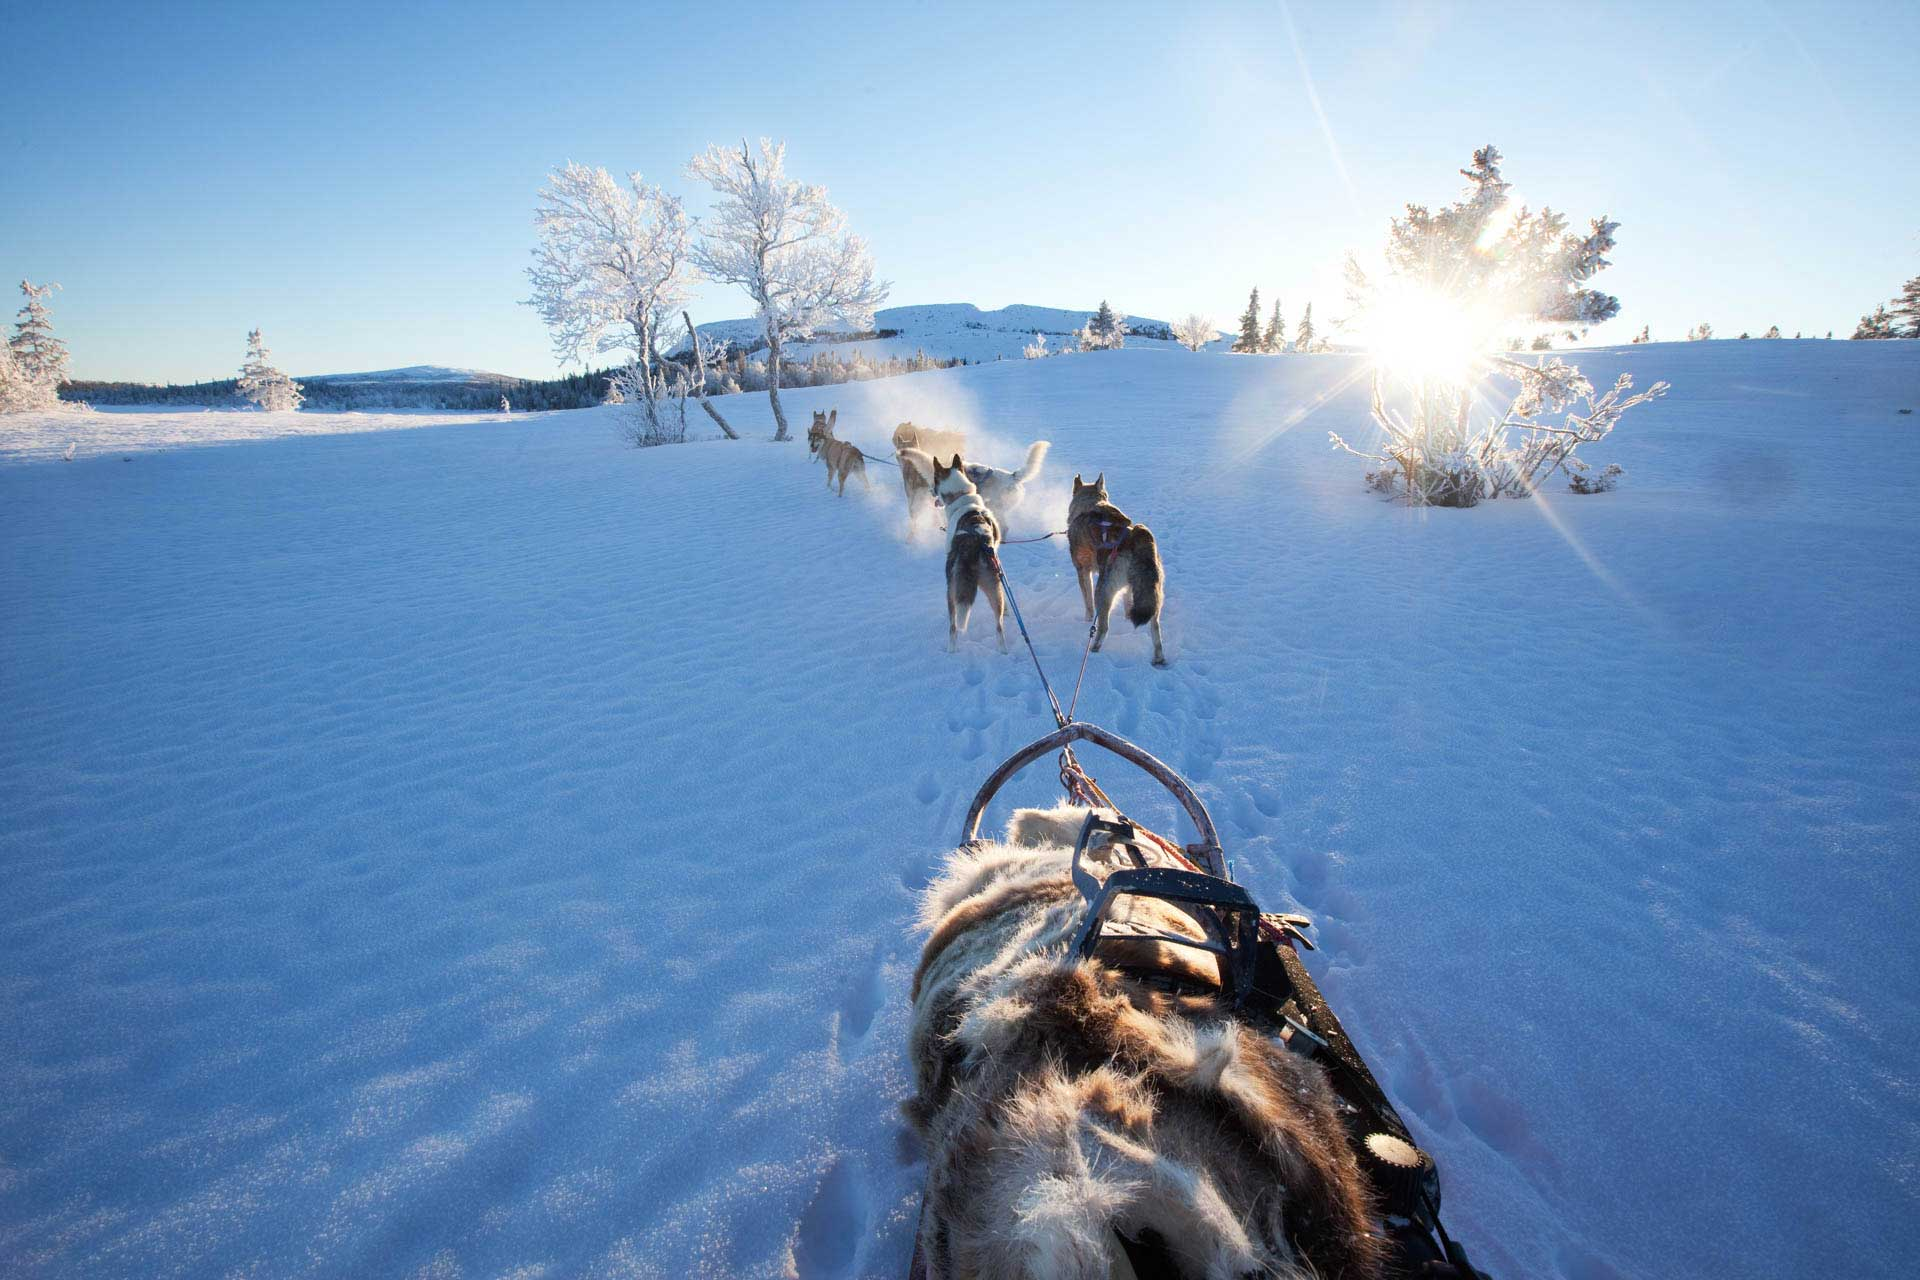 Dog sledding Sweden | Photo: Nicklas Blom